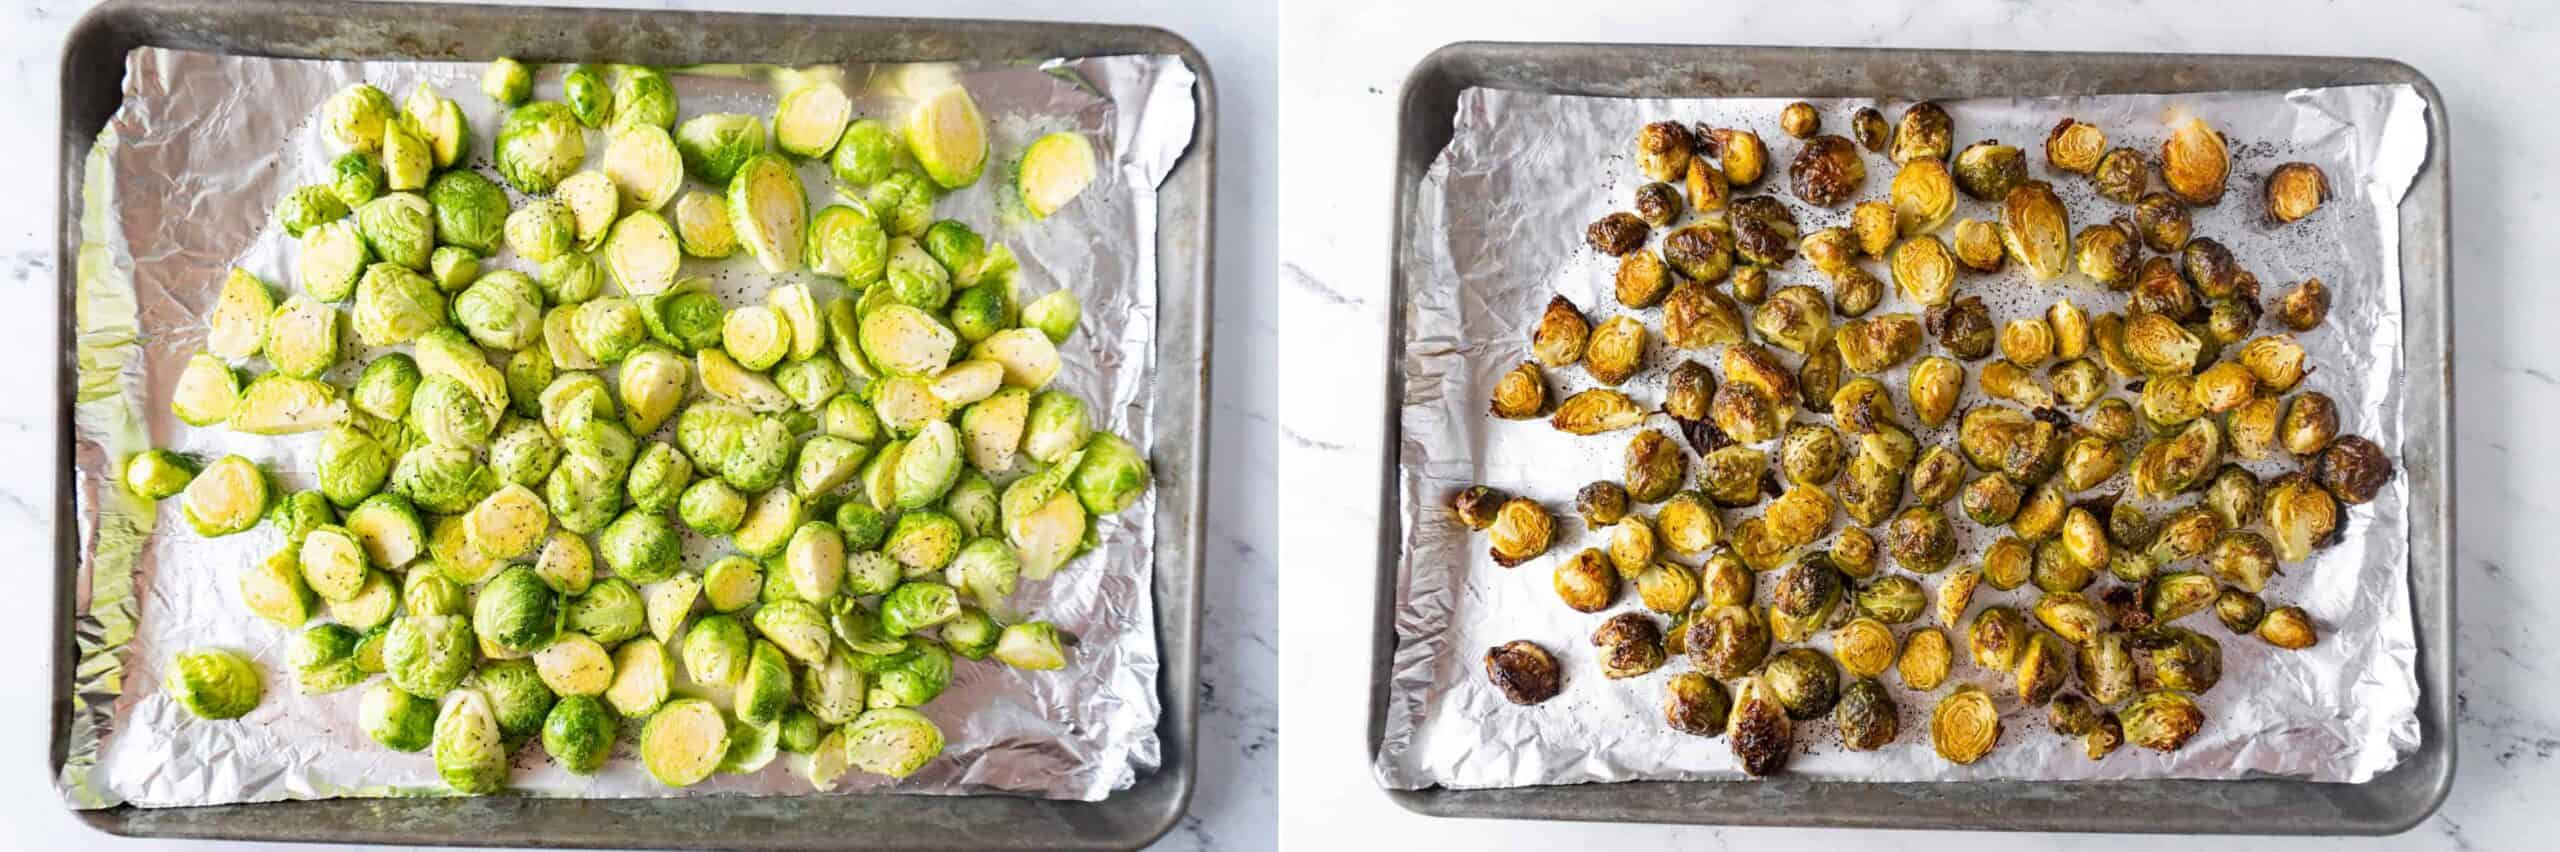 Before and after baking brussel sprouts